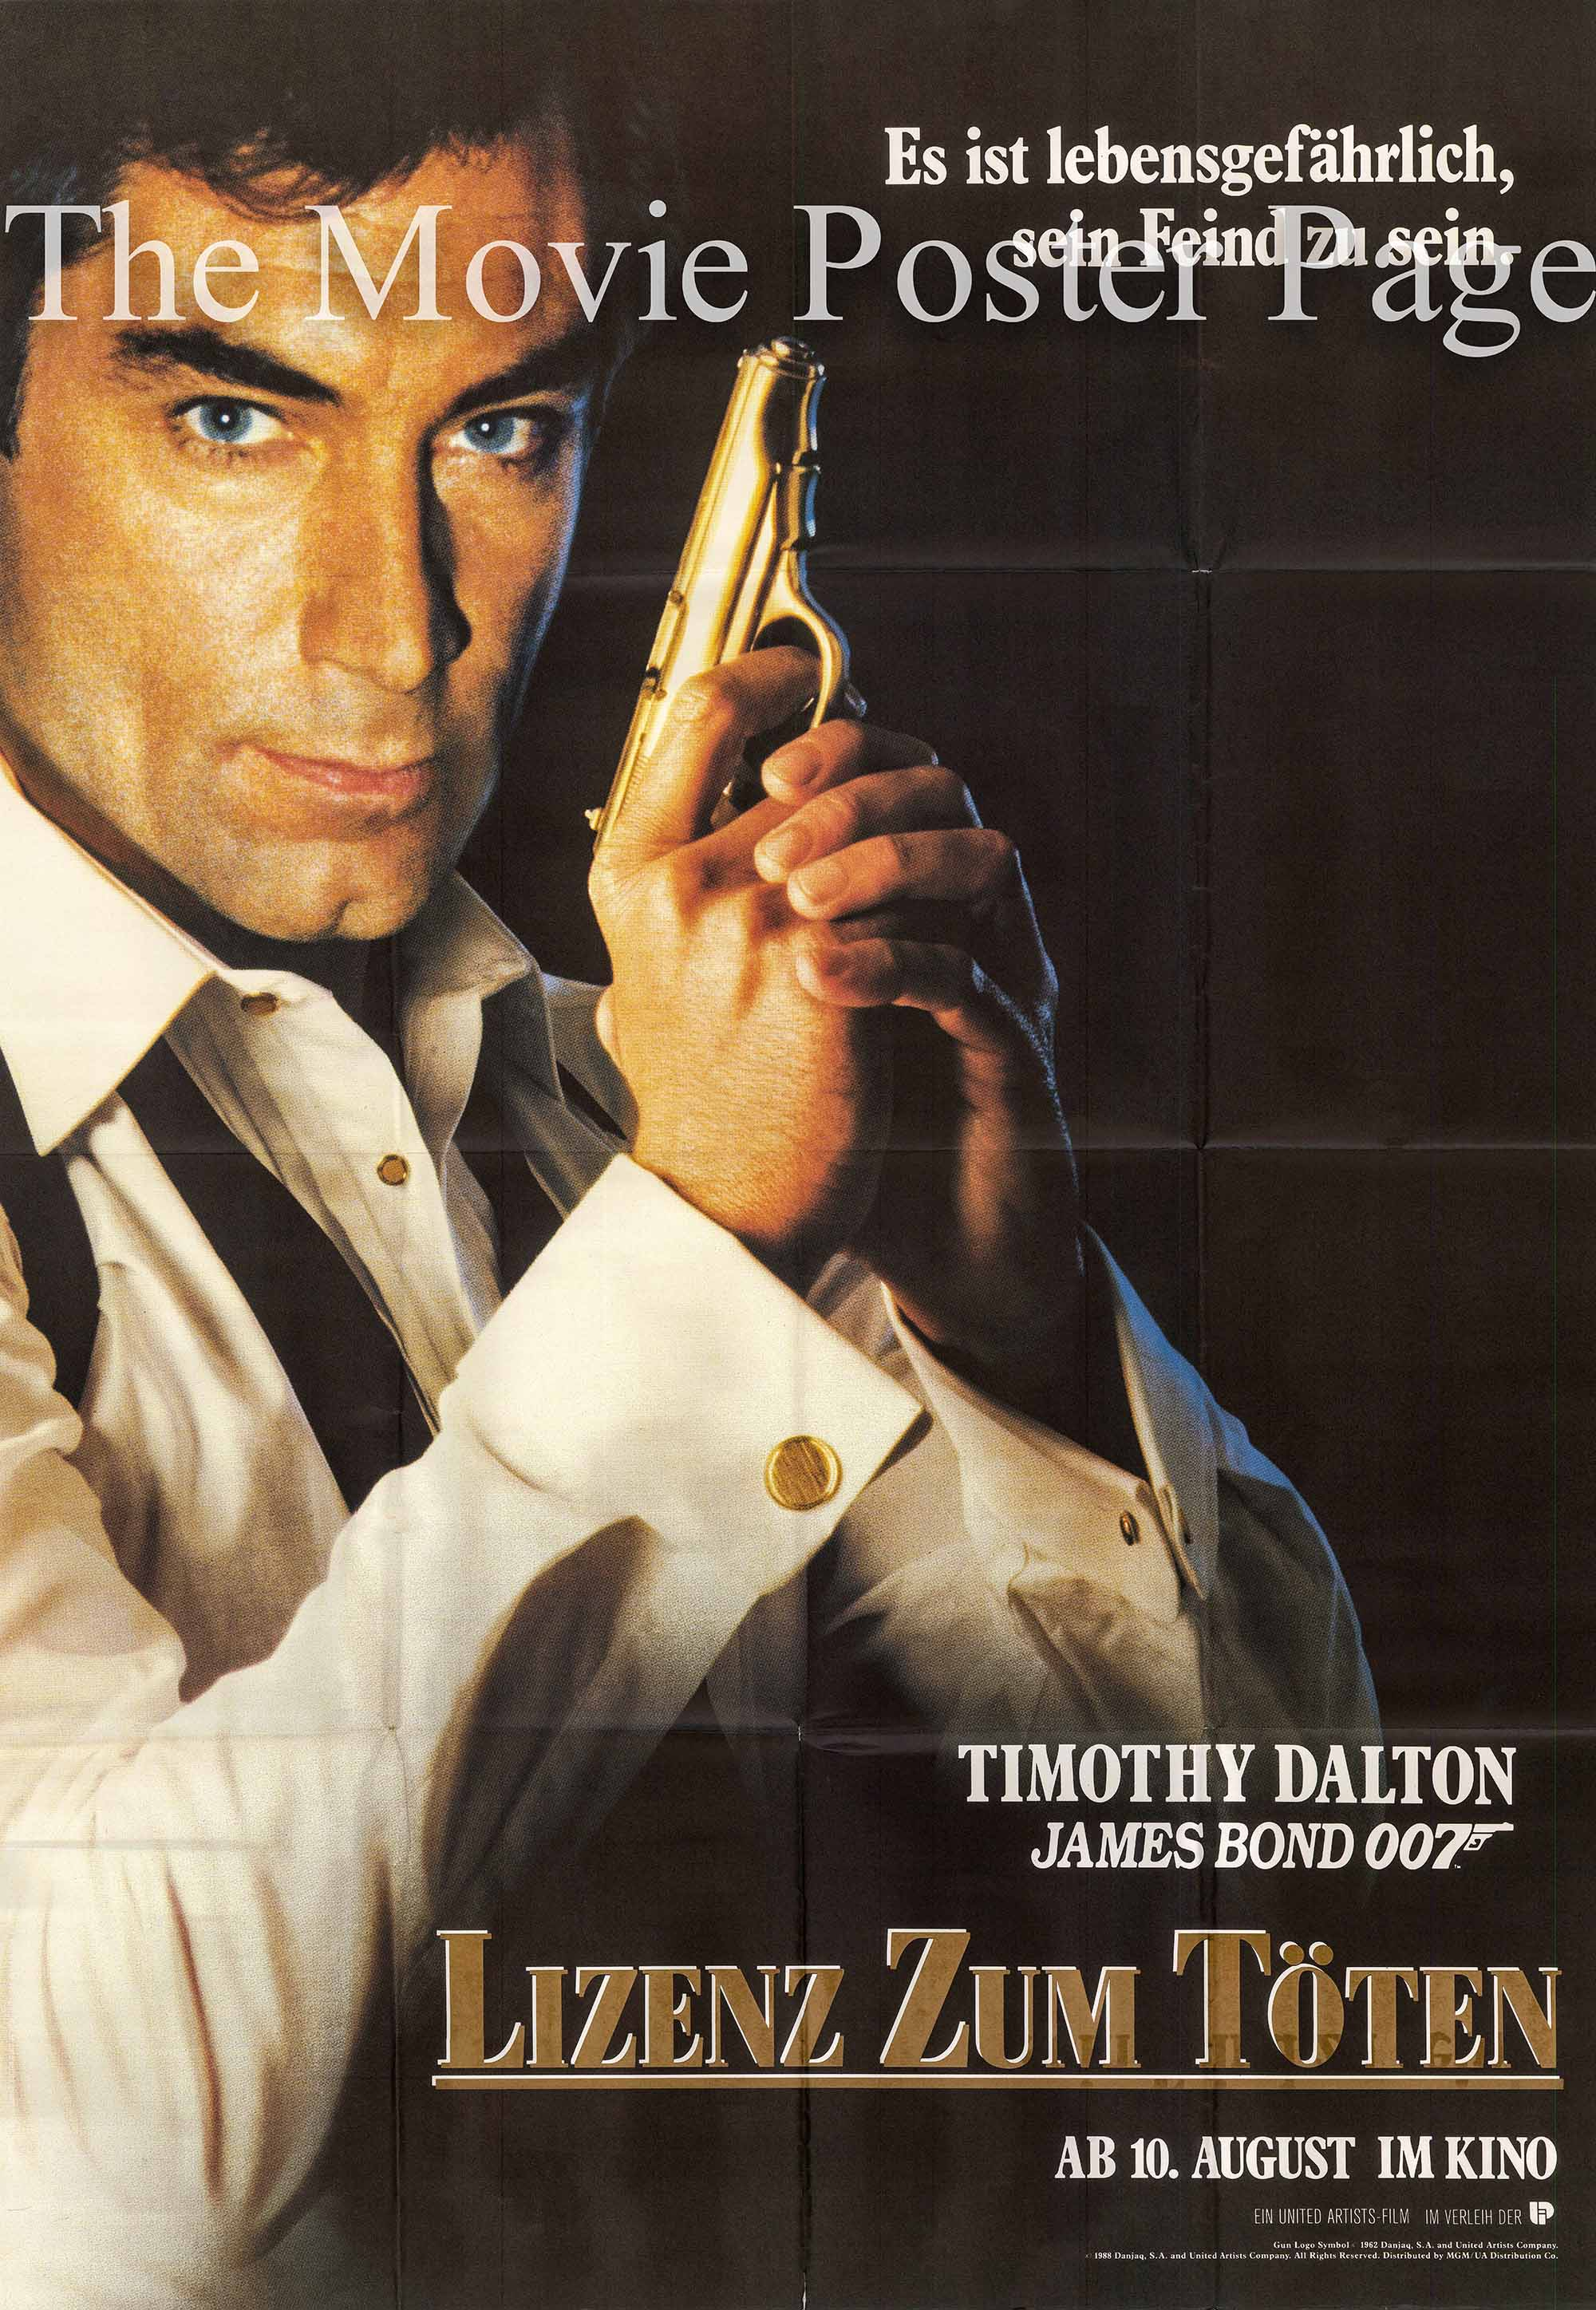 Pictured is a German two-sheet promotional poster for the 1989 John Glen film License to Kill starring Timothy Dalton as James Bond.